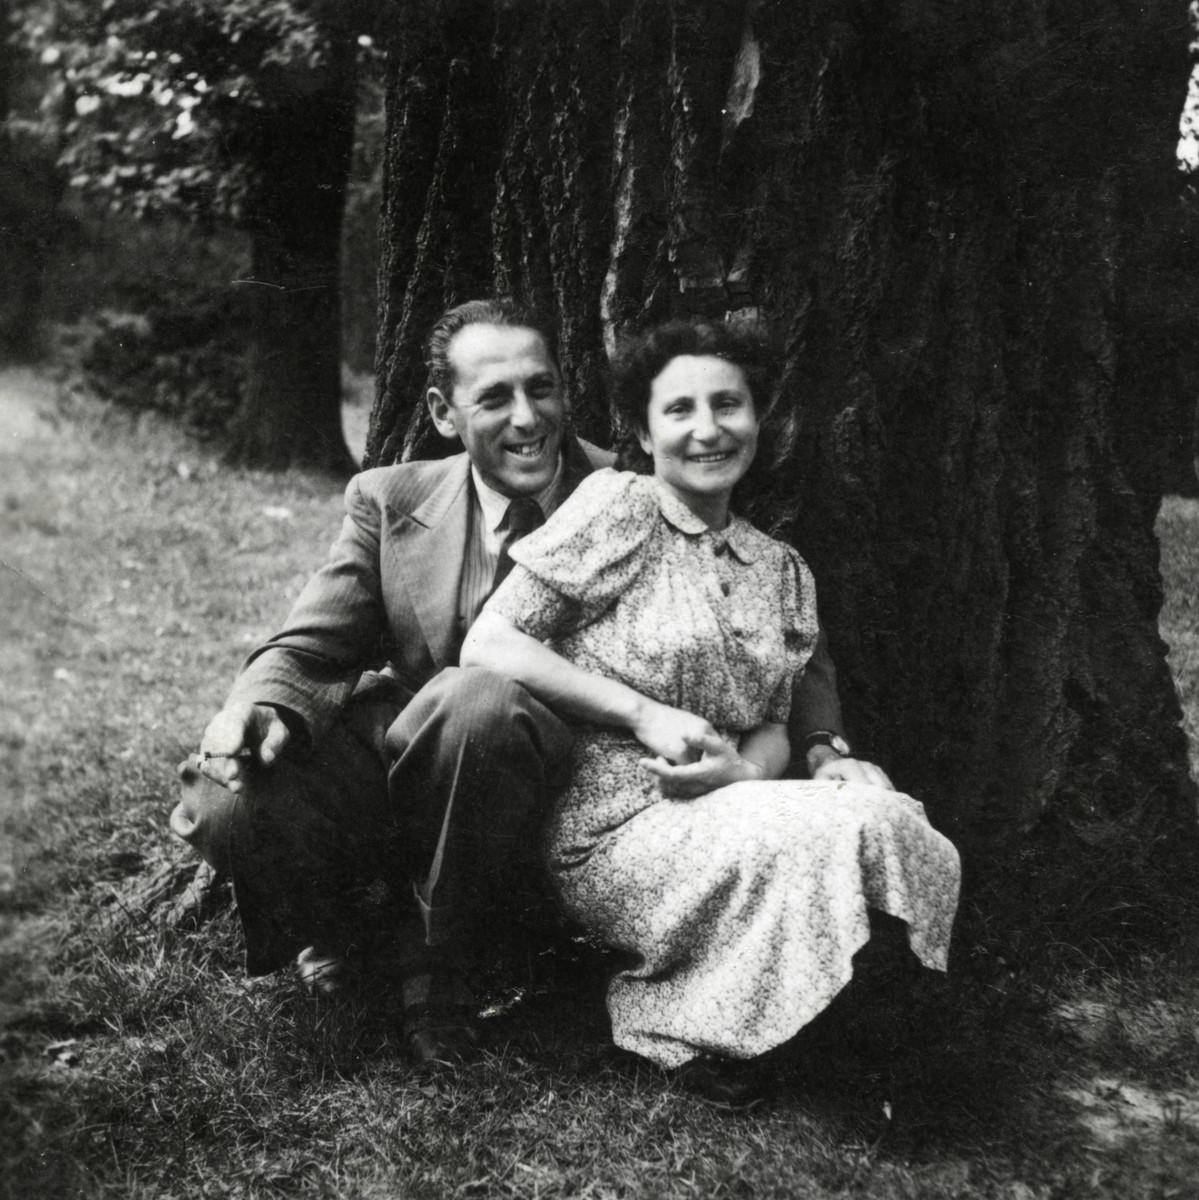 Emil and Elze Goldberg sit outside on the grass in postwar Szczecin.